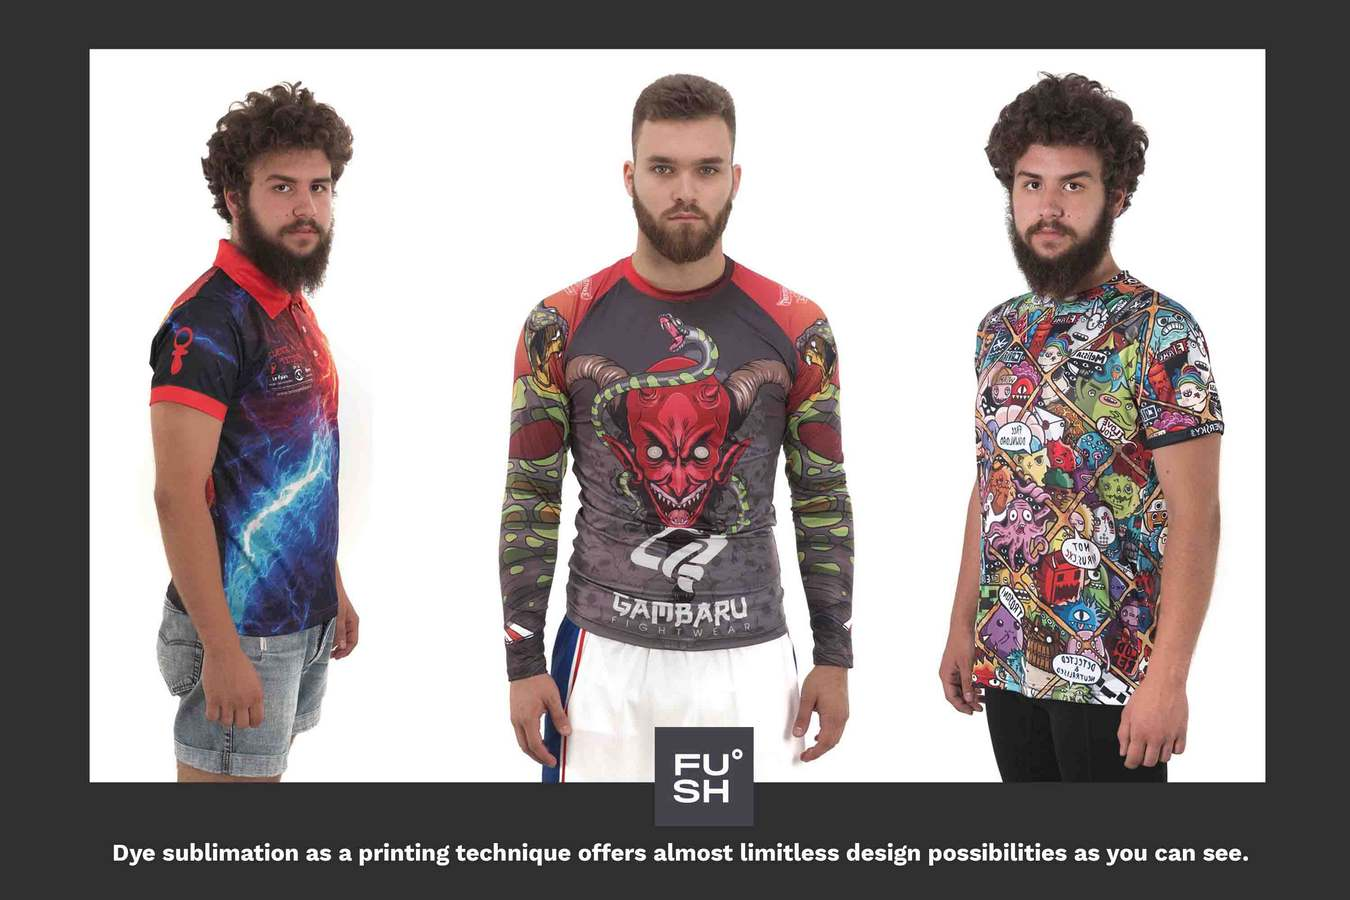 """Image of three male models wearing different types of all-over sublimation clothing. """"FUSH"""" logo and description text are visible."""